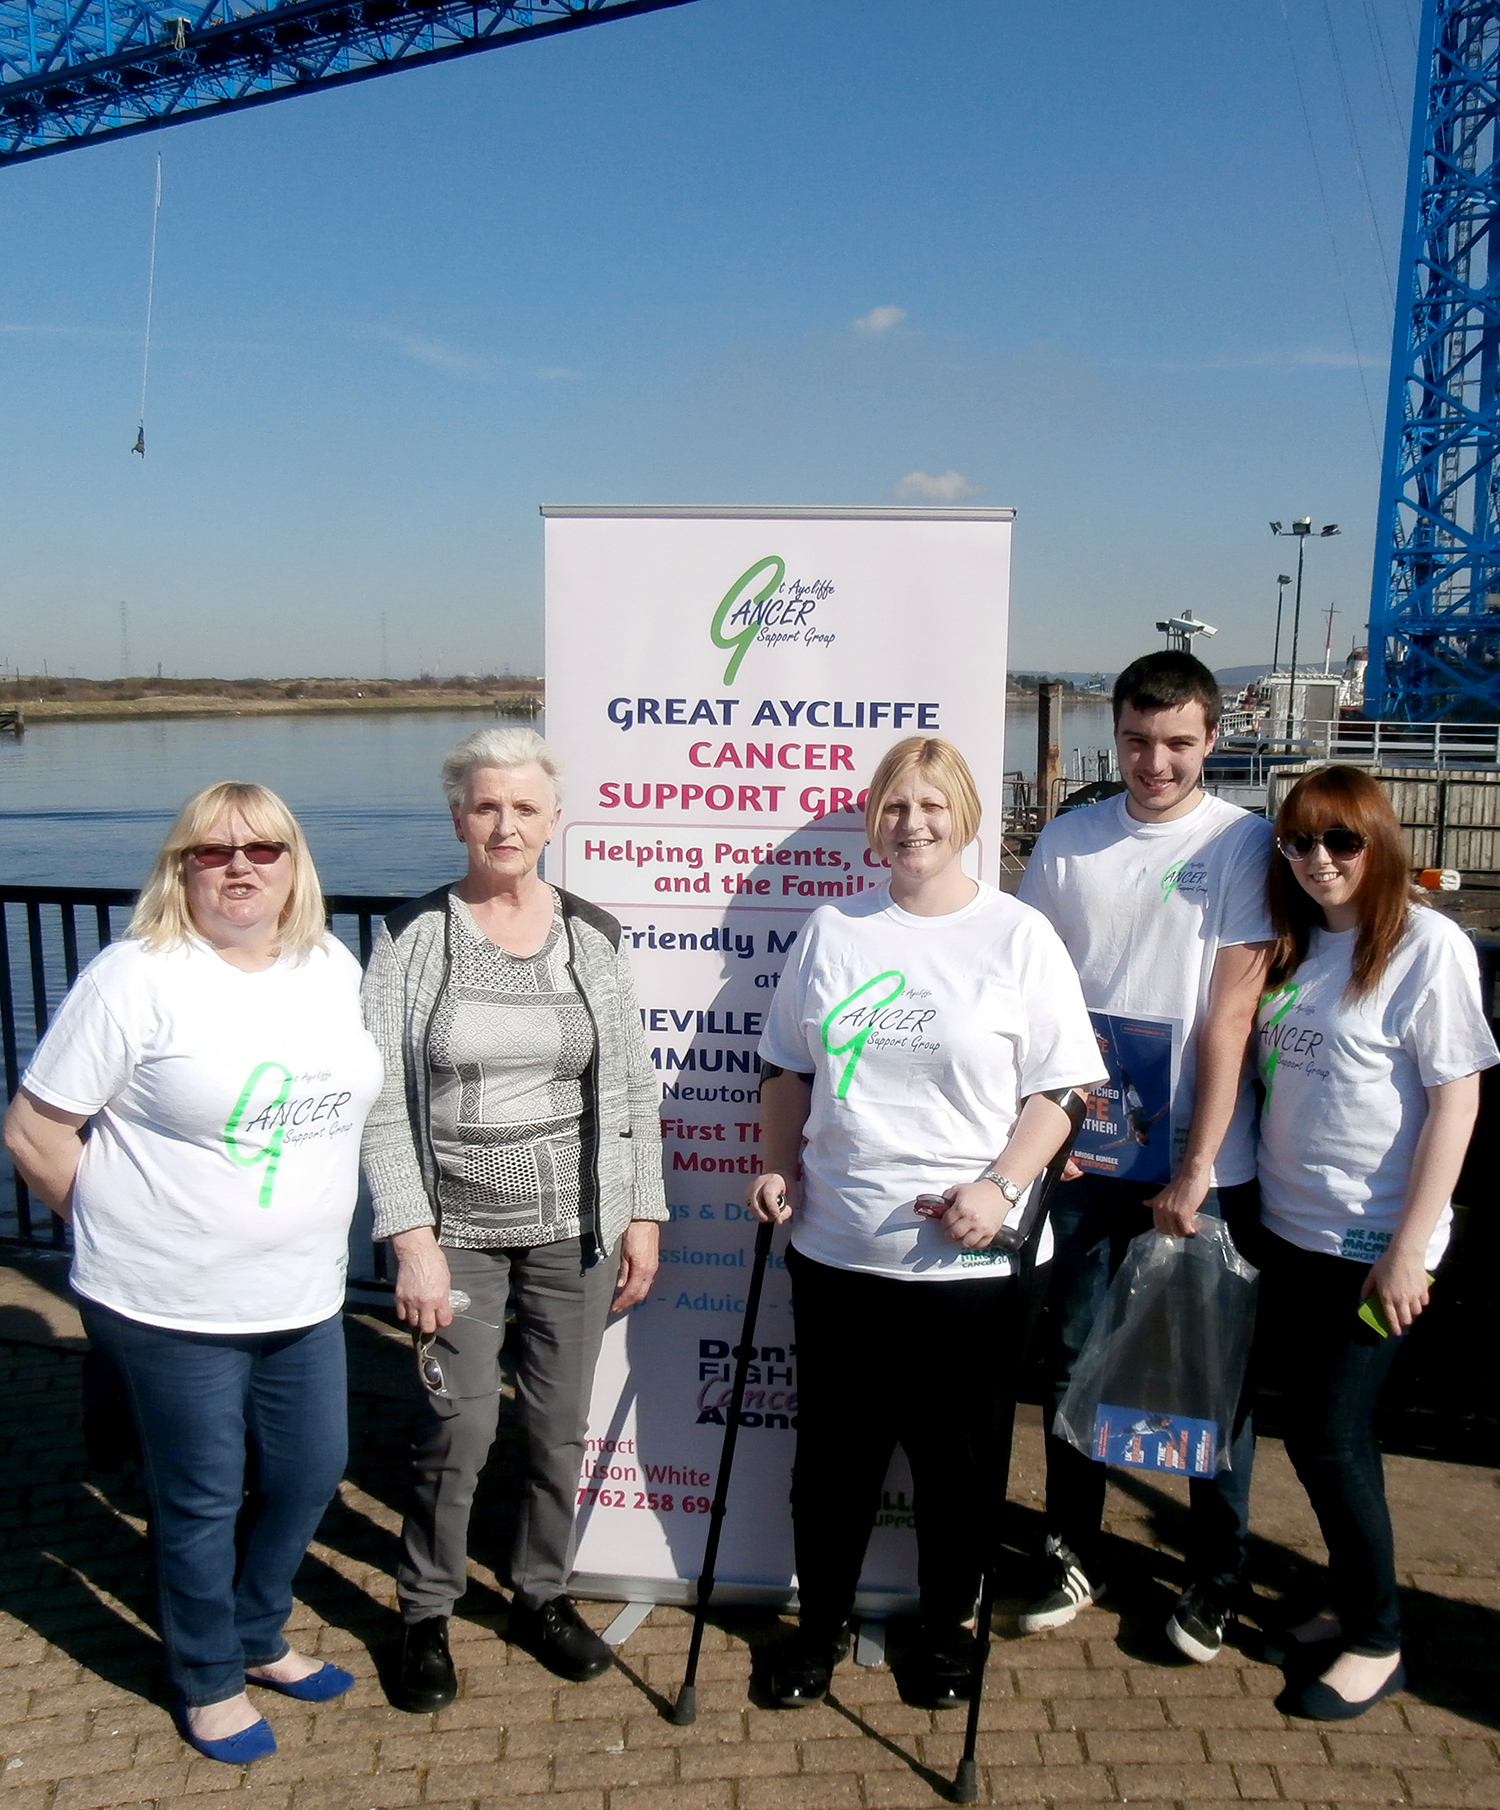 Join Great Aycliffe Cancer Support Group